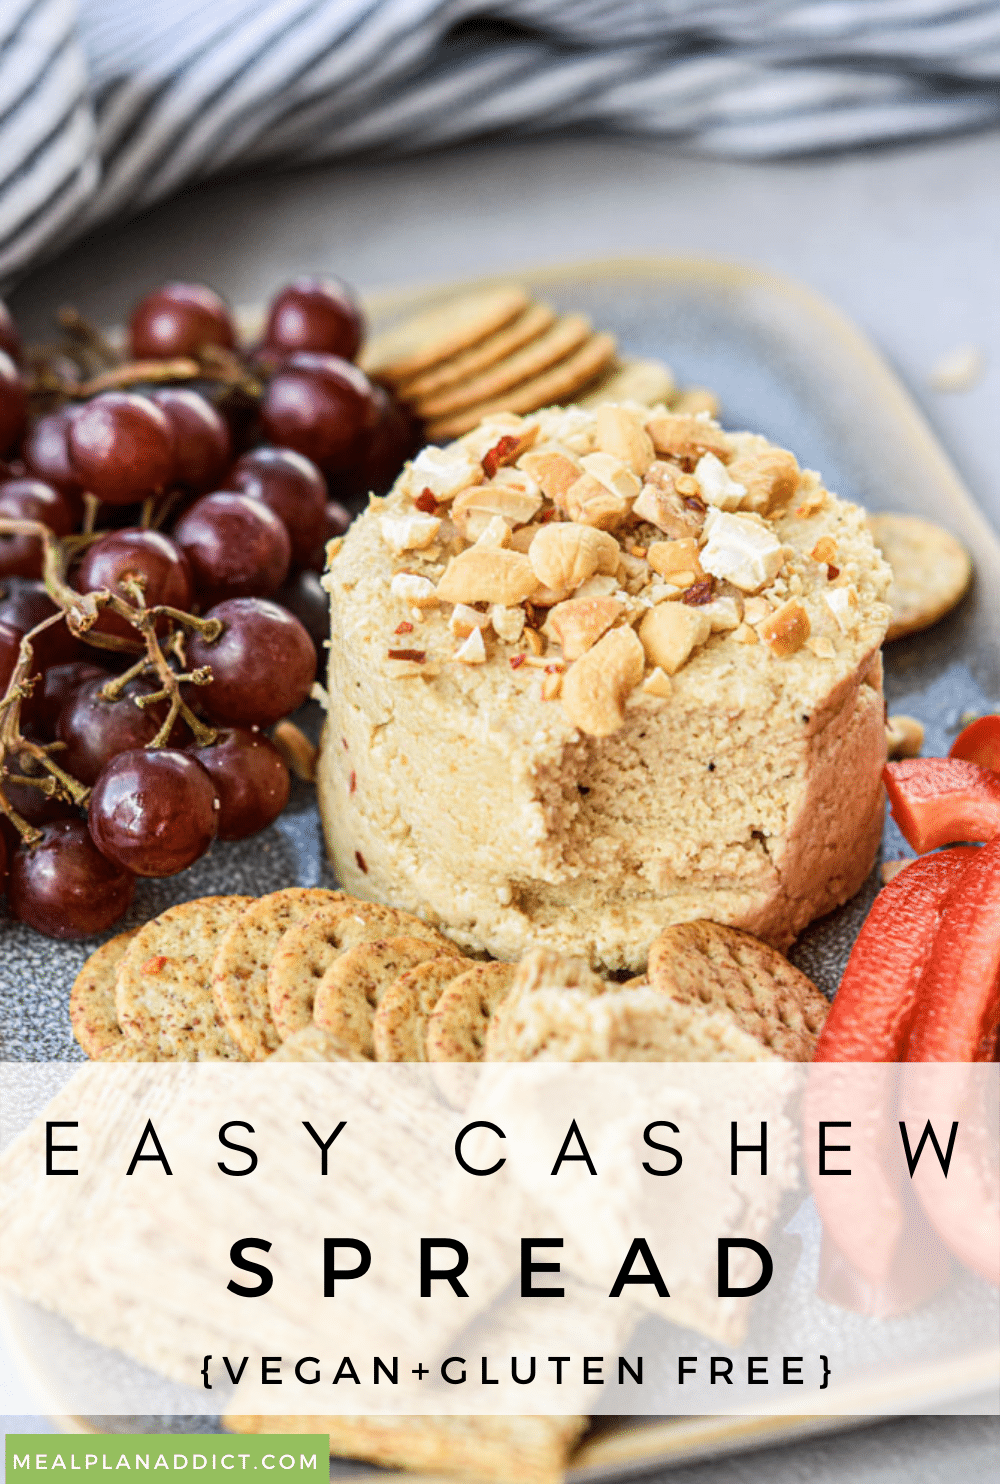 Cashew spread pin for Pinterest